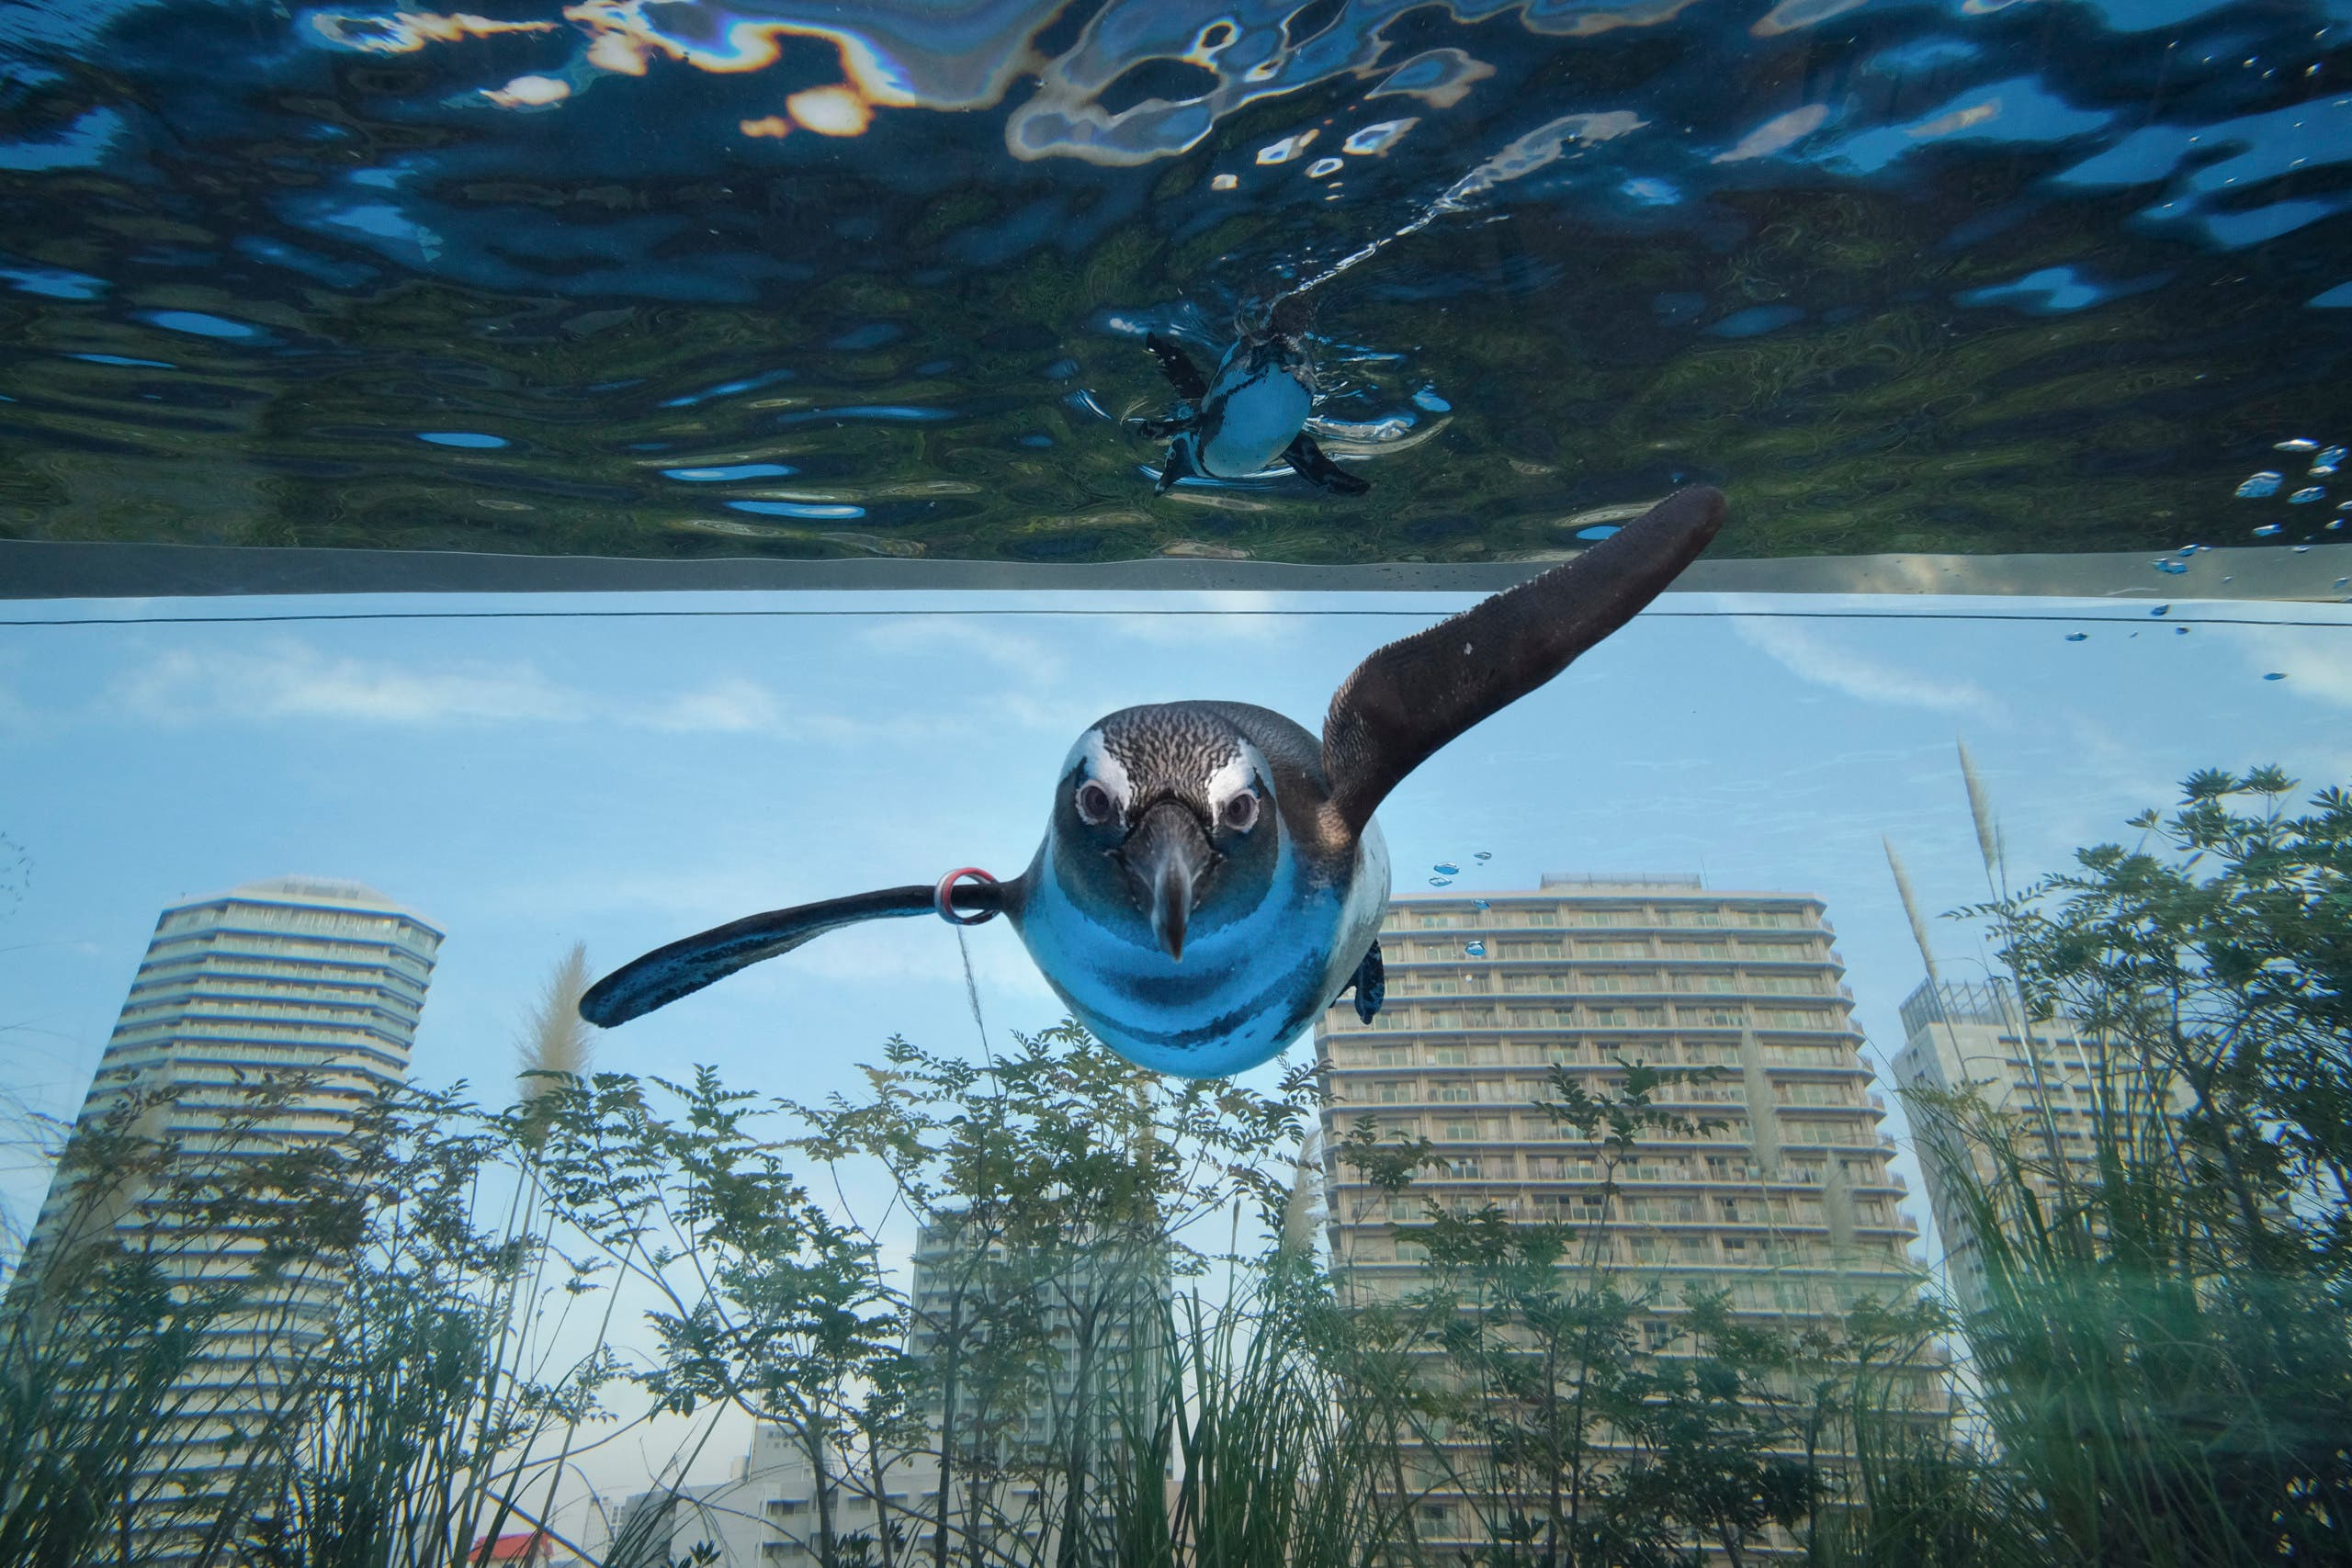 An African penguin swims in a large overhanging water tank called Penguin in the sky at Sunshine Aquarium in Tokyo on December 11, 2020. (File photo: AFP)